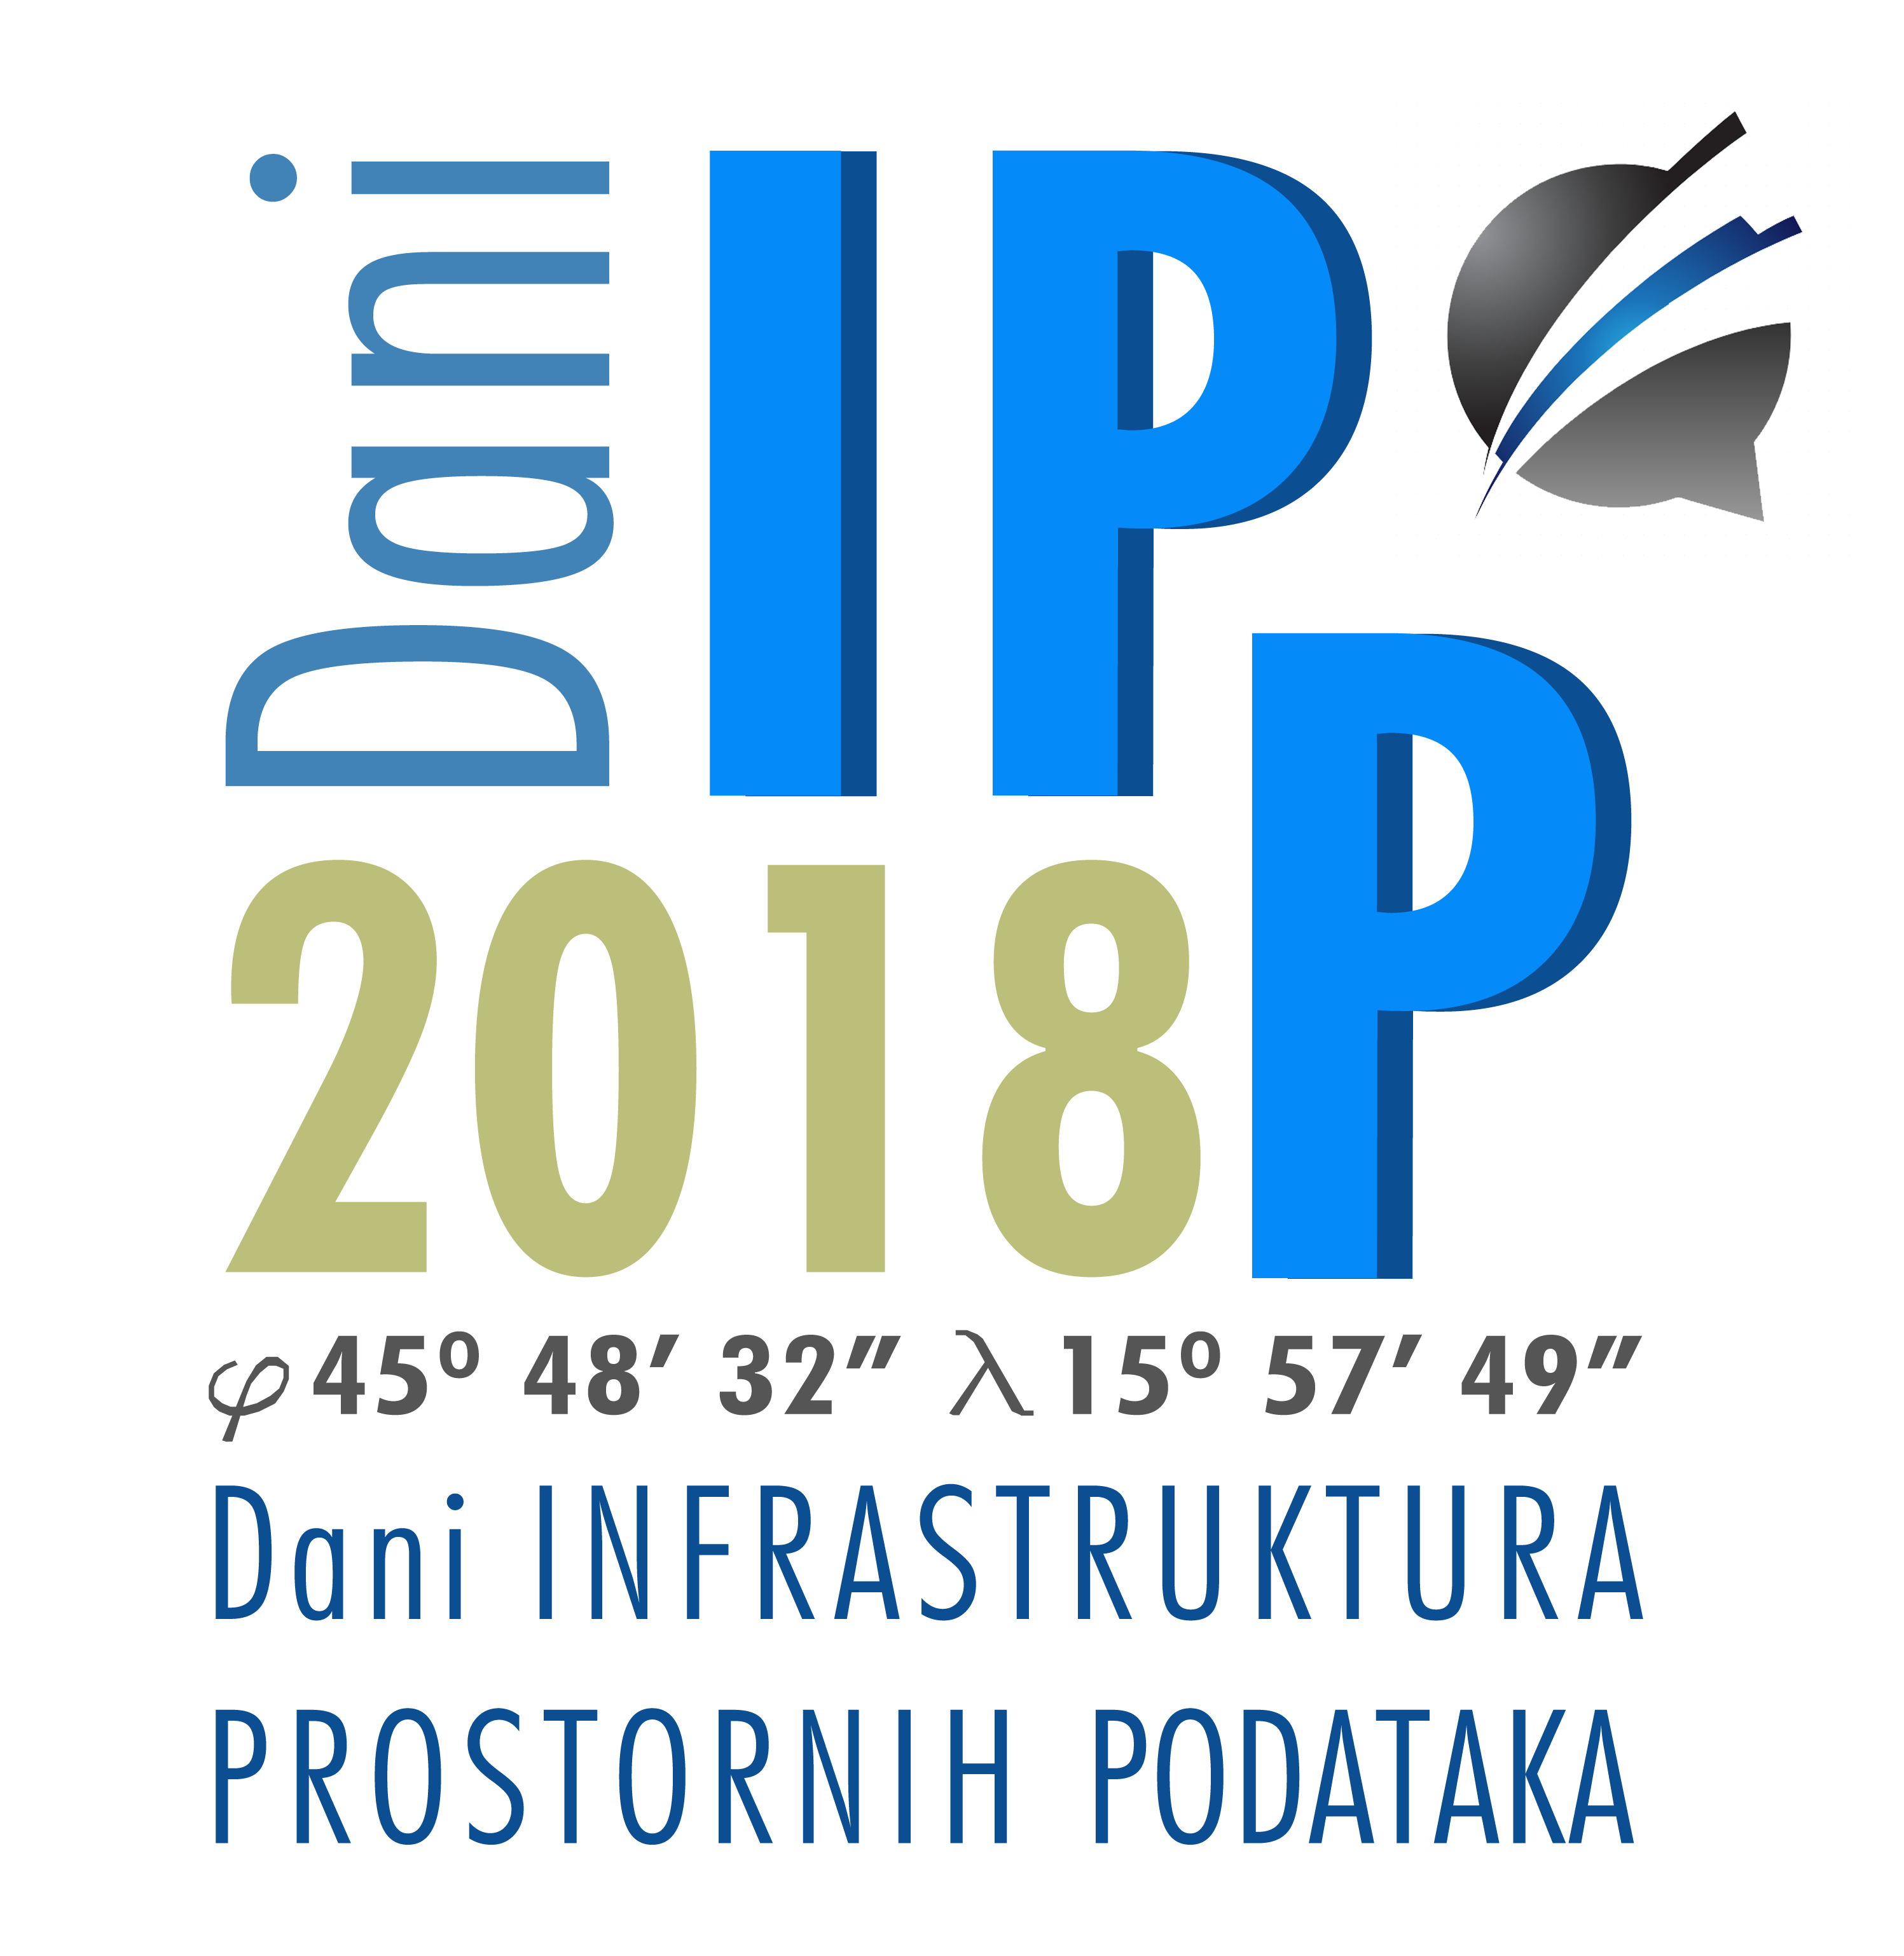 The picture shows logo of the SDI Days 2018.